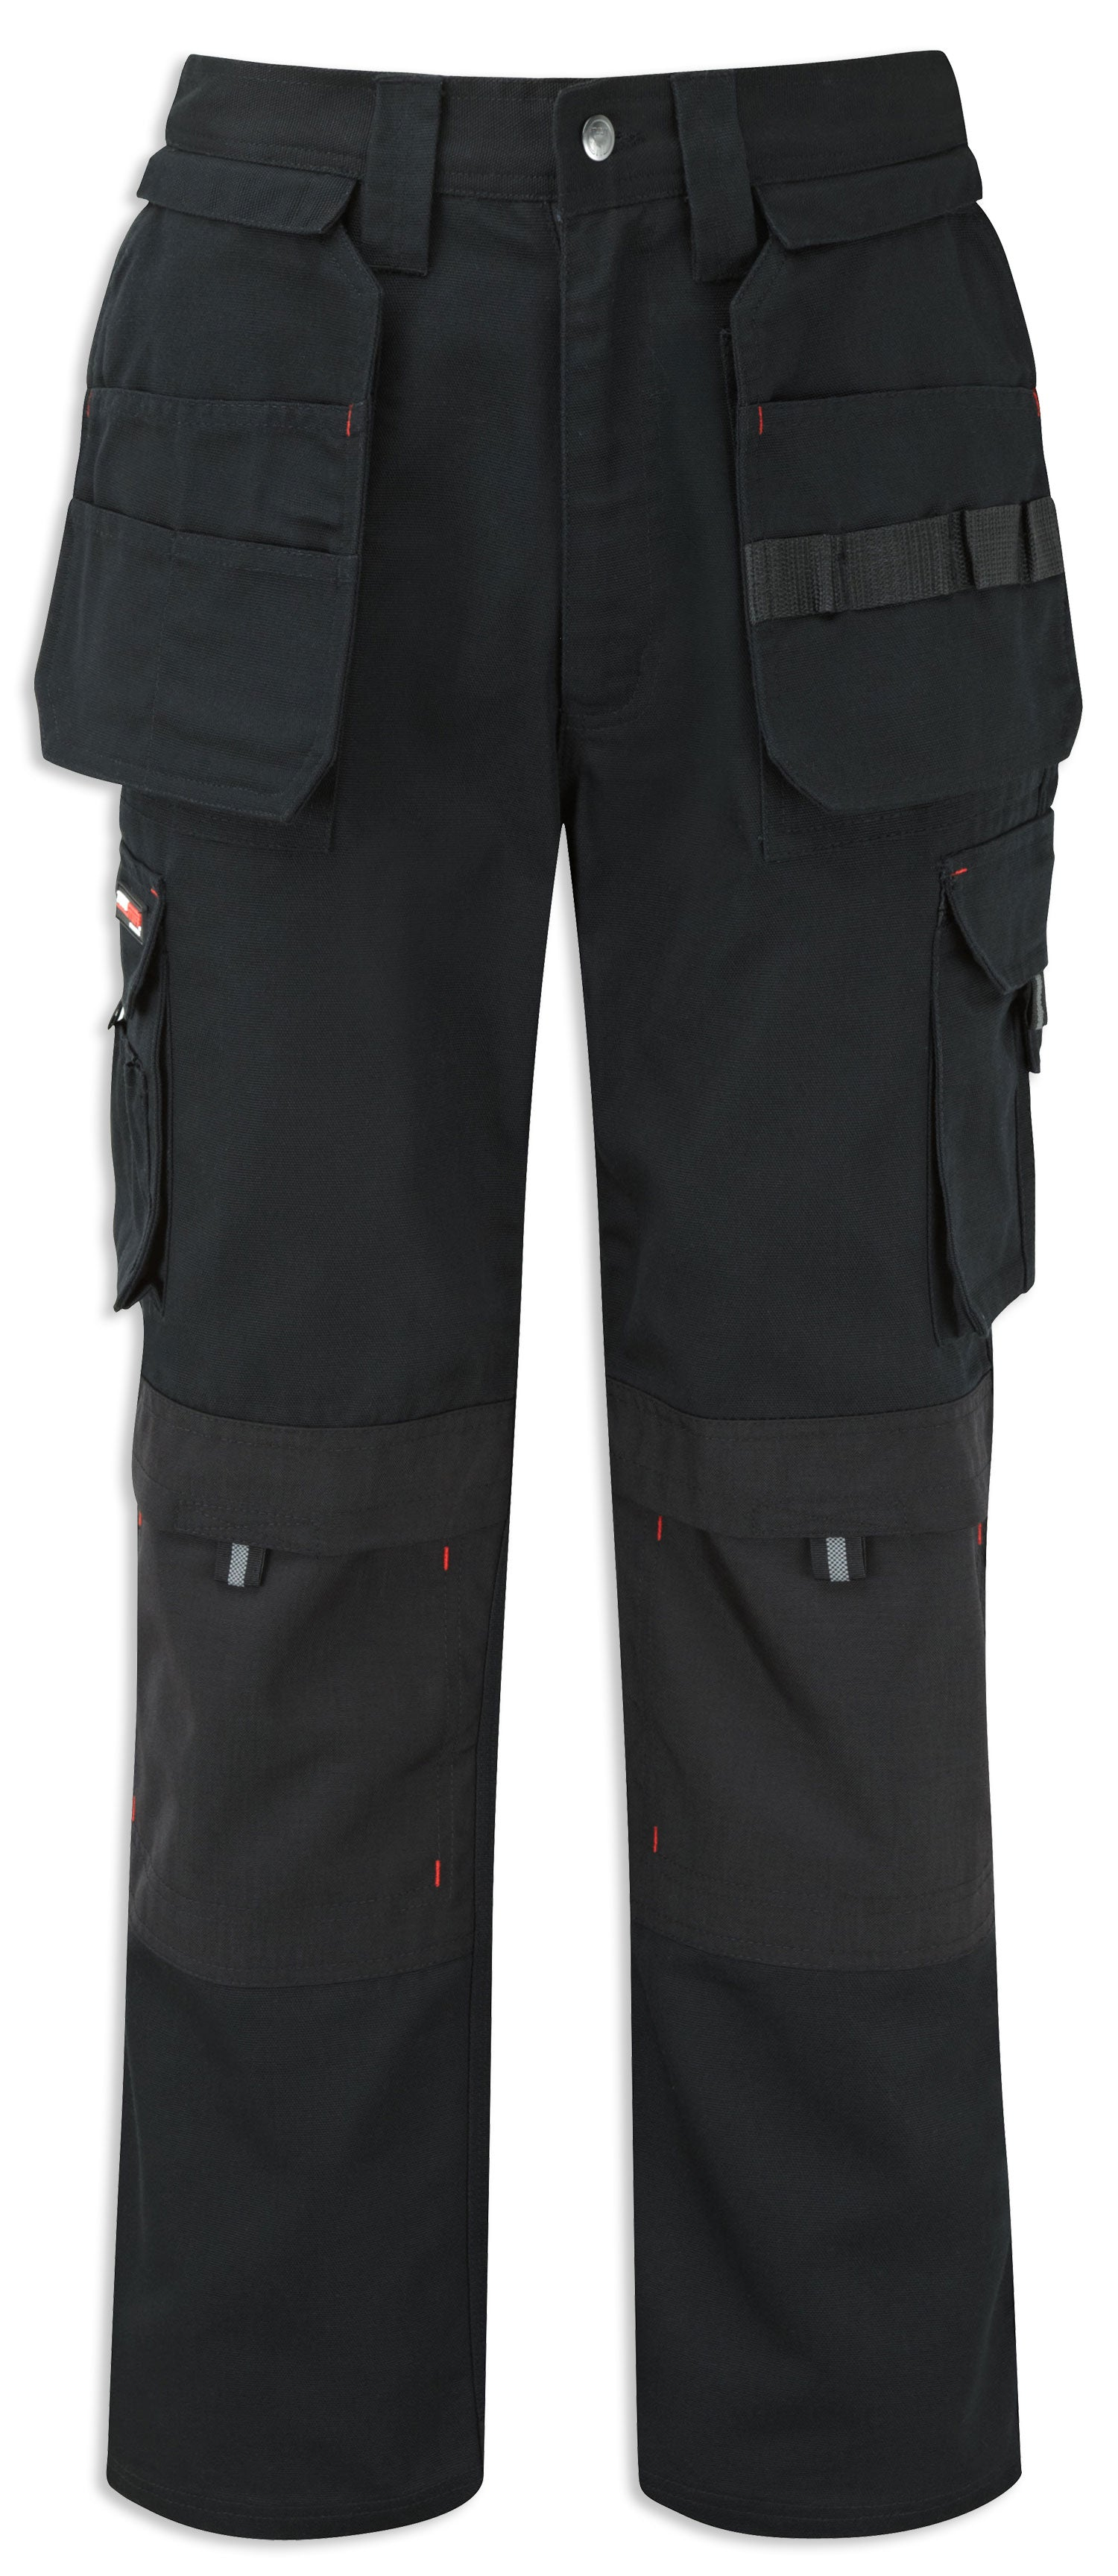 Black Castle Tuffstuff Extreme Work Trousers